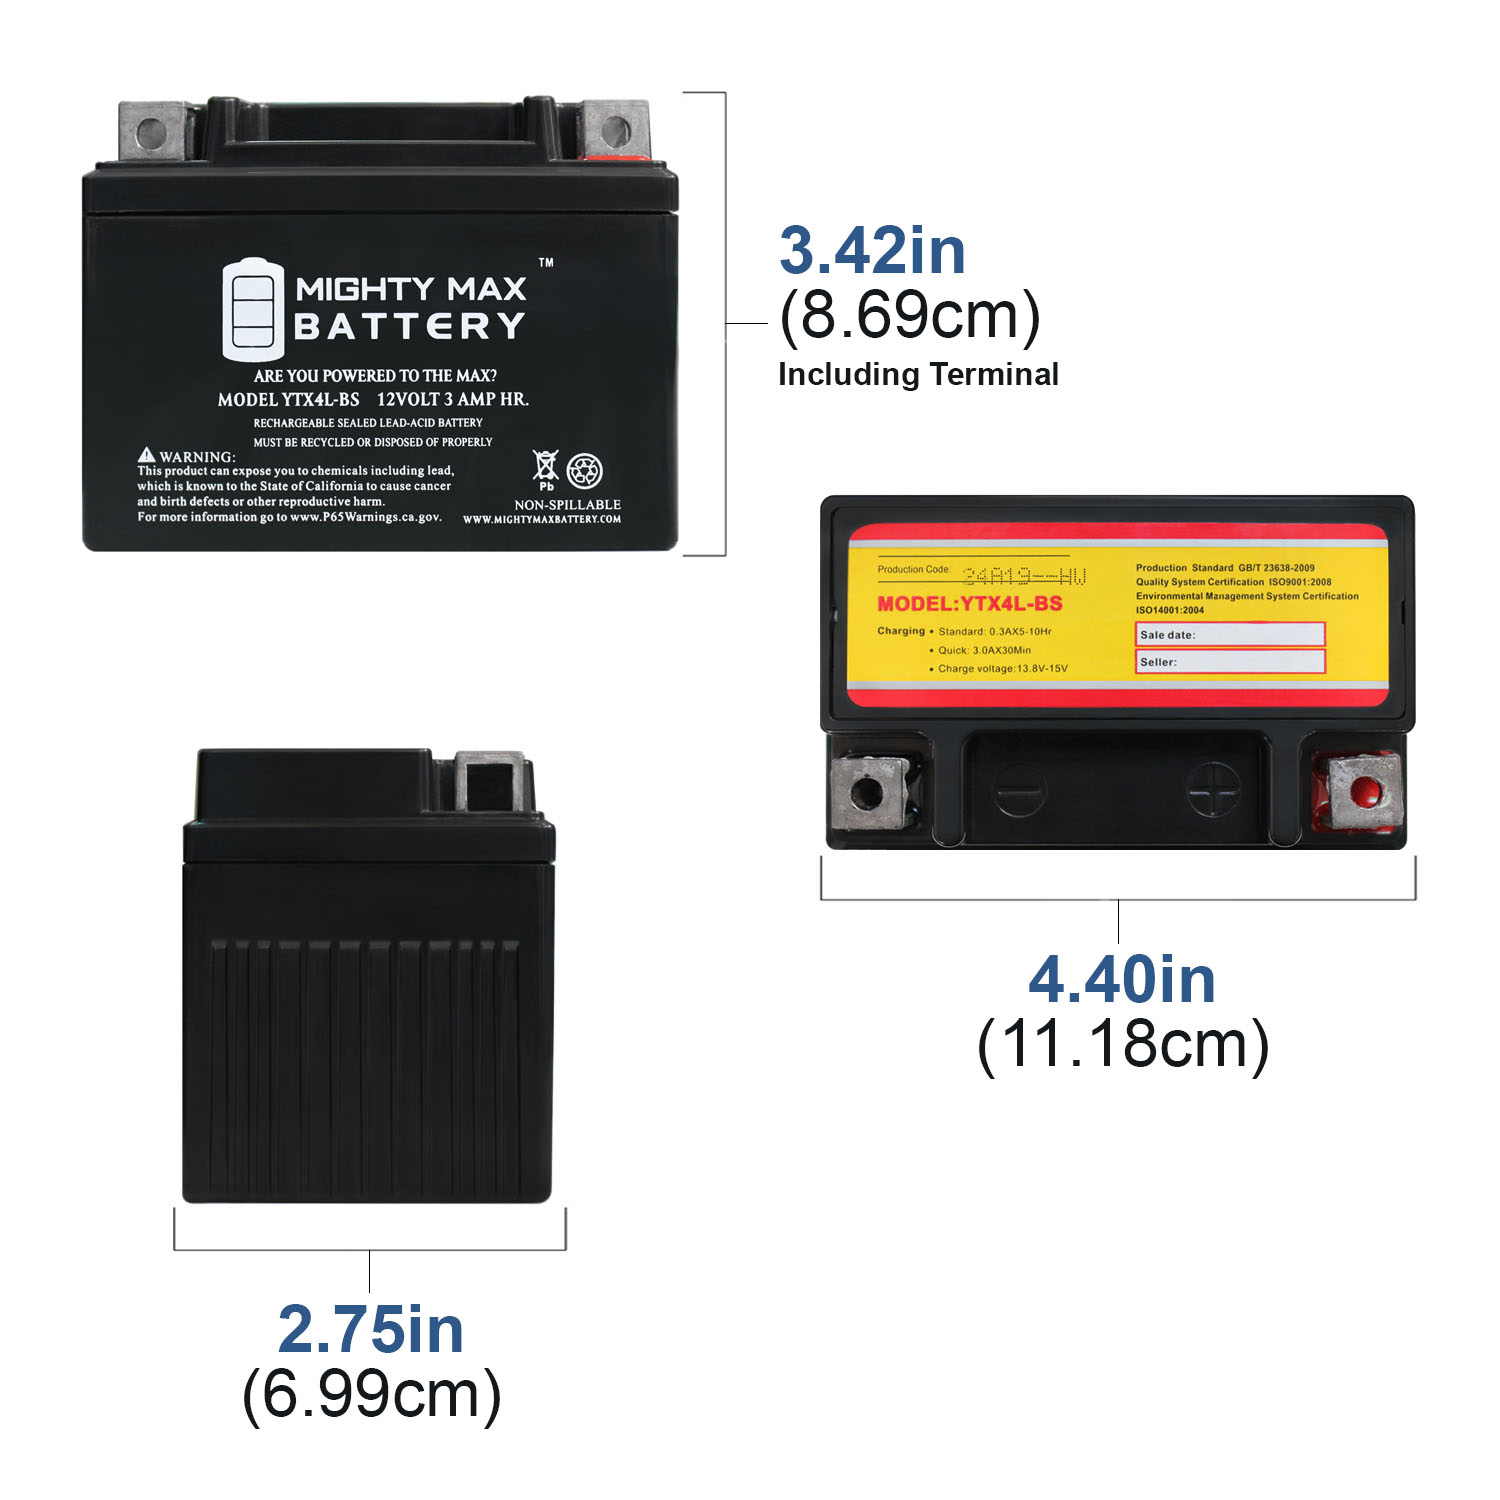 YTX4L-BS 12 VOLT 3AH MOTORCYCLE BATTERY REPLACES YTX4L-BS - 1